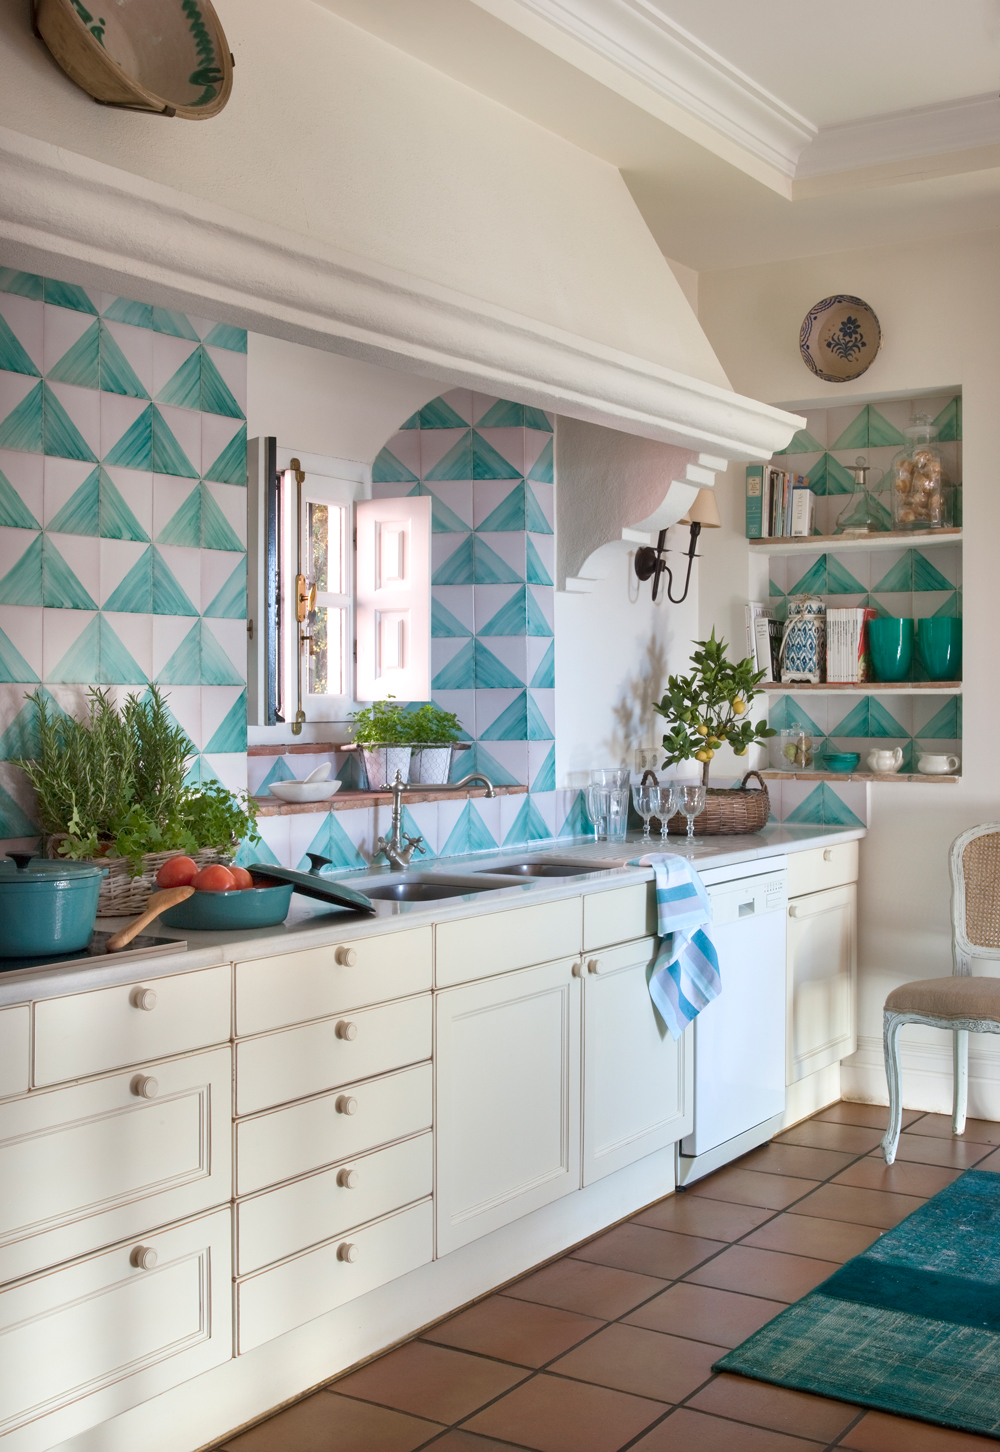 Dale color a tu cocina blanca for Marmol de color azul